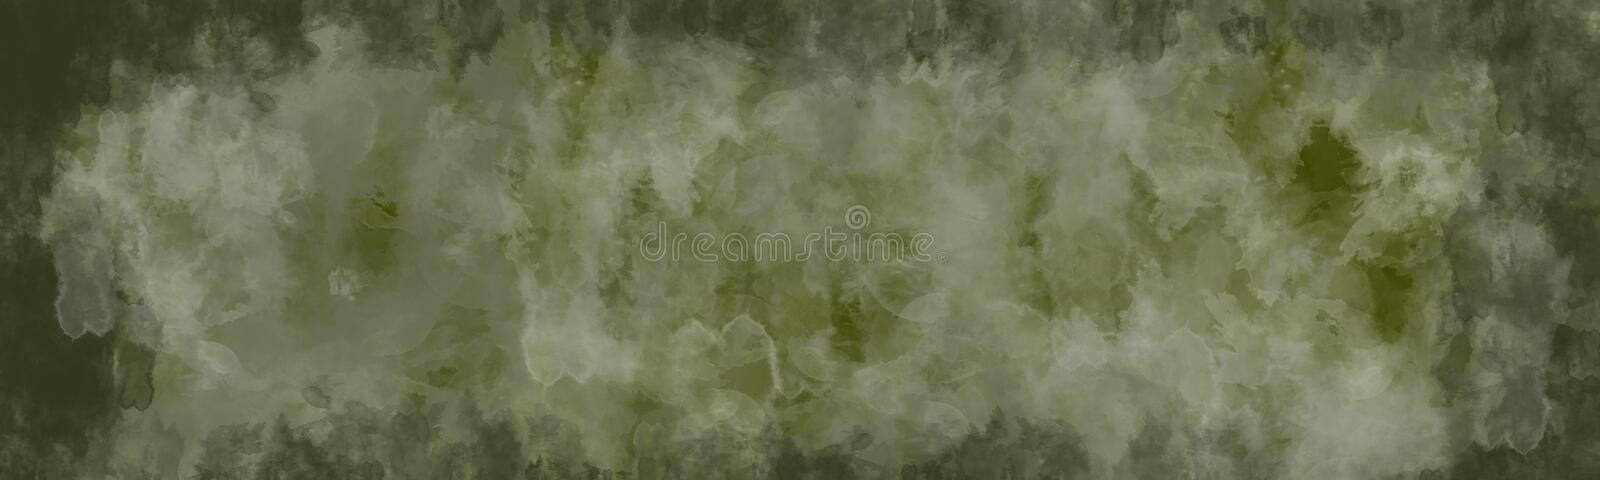 Abstract background, vintage texture with border vector illustration